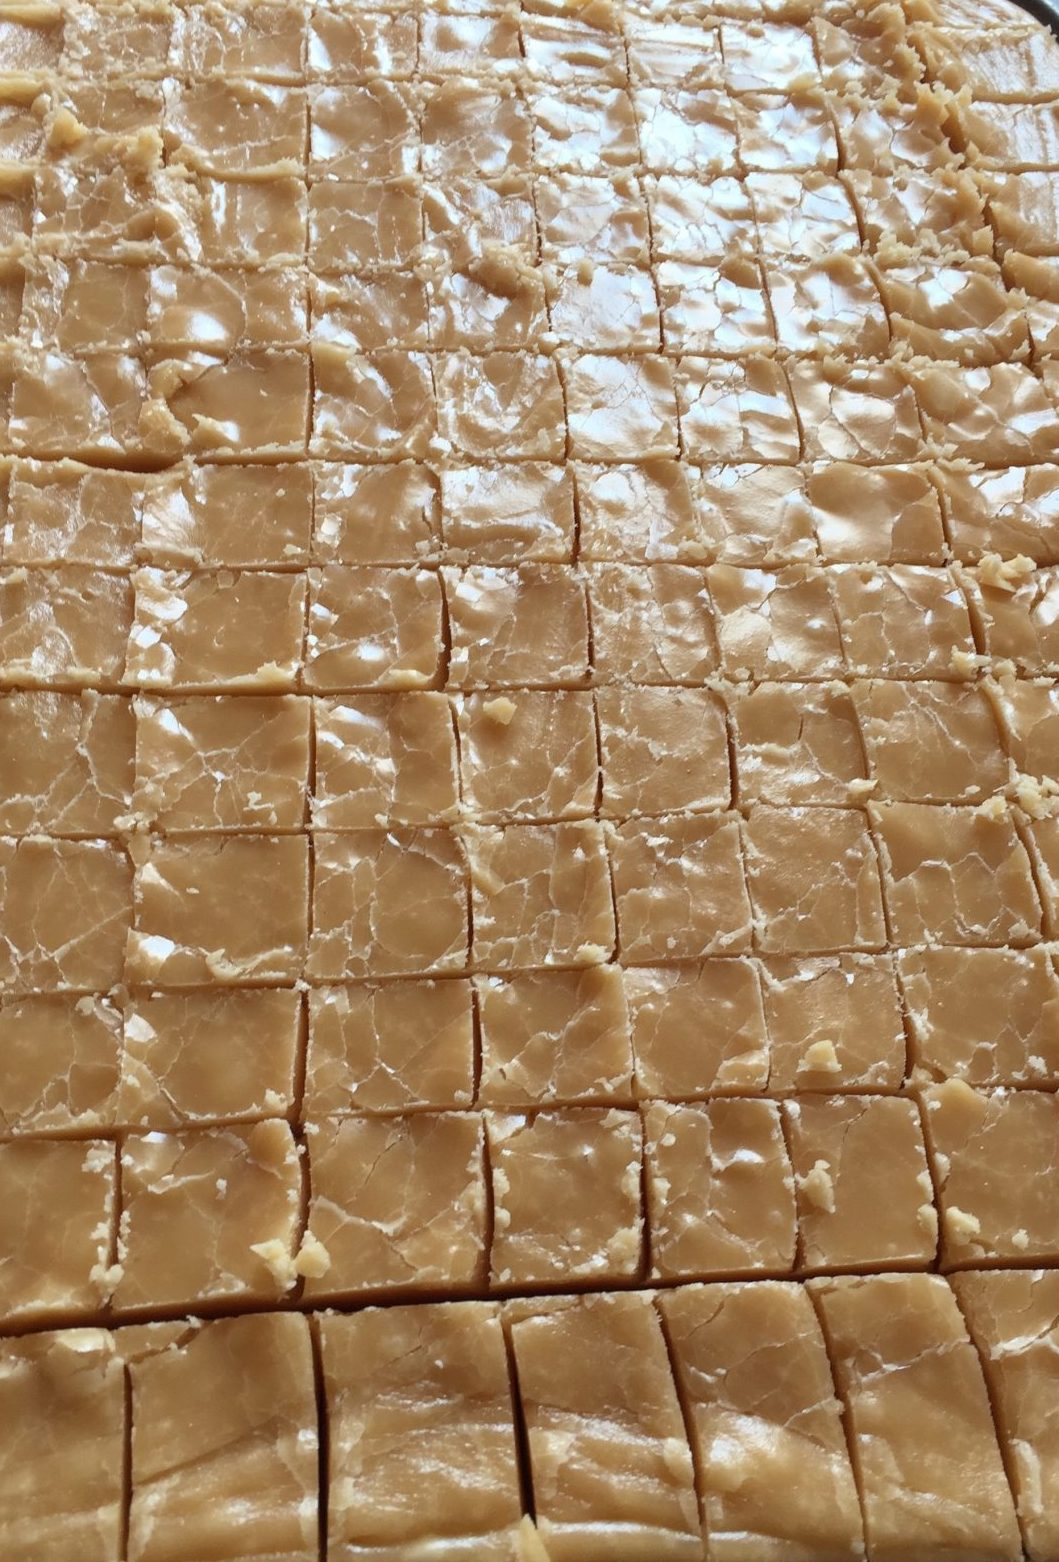 Our Homemade Scottish Tablet